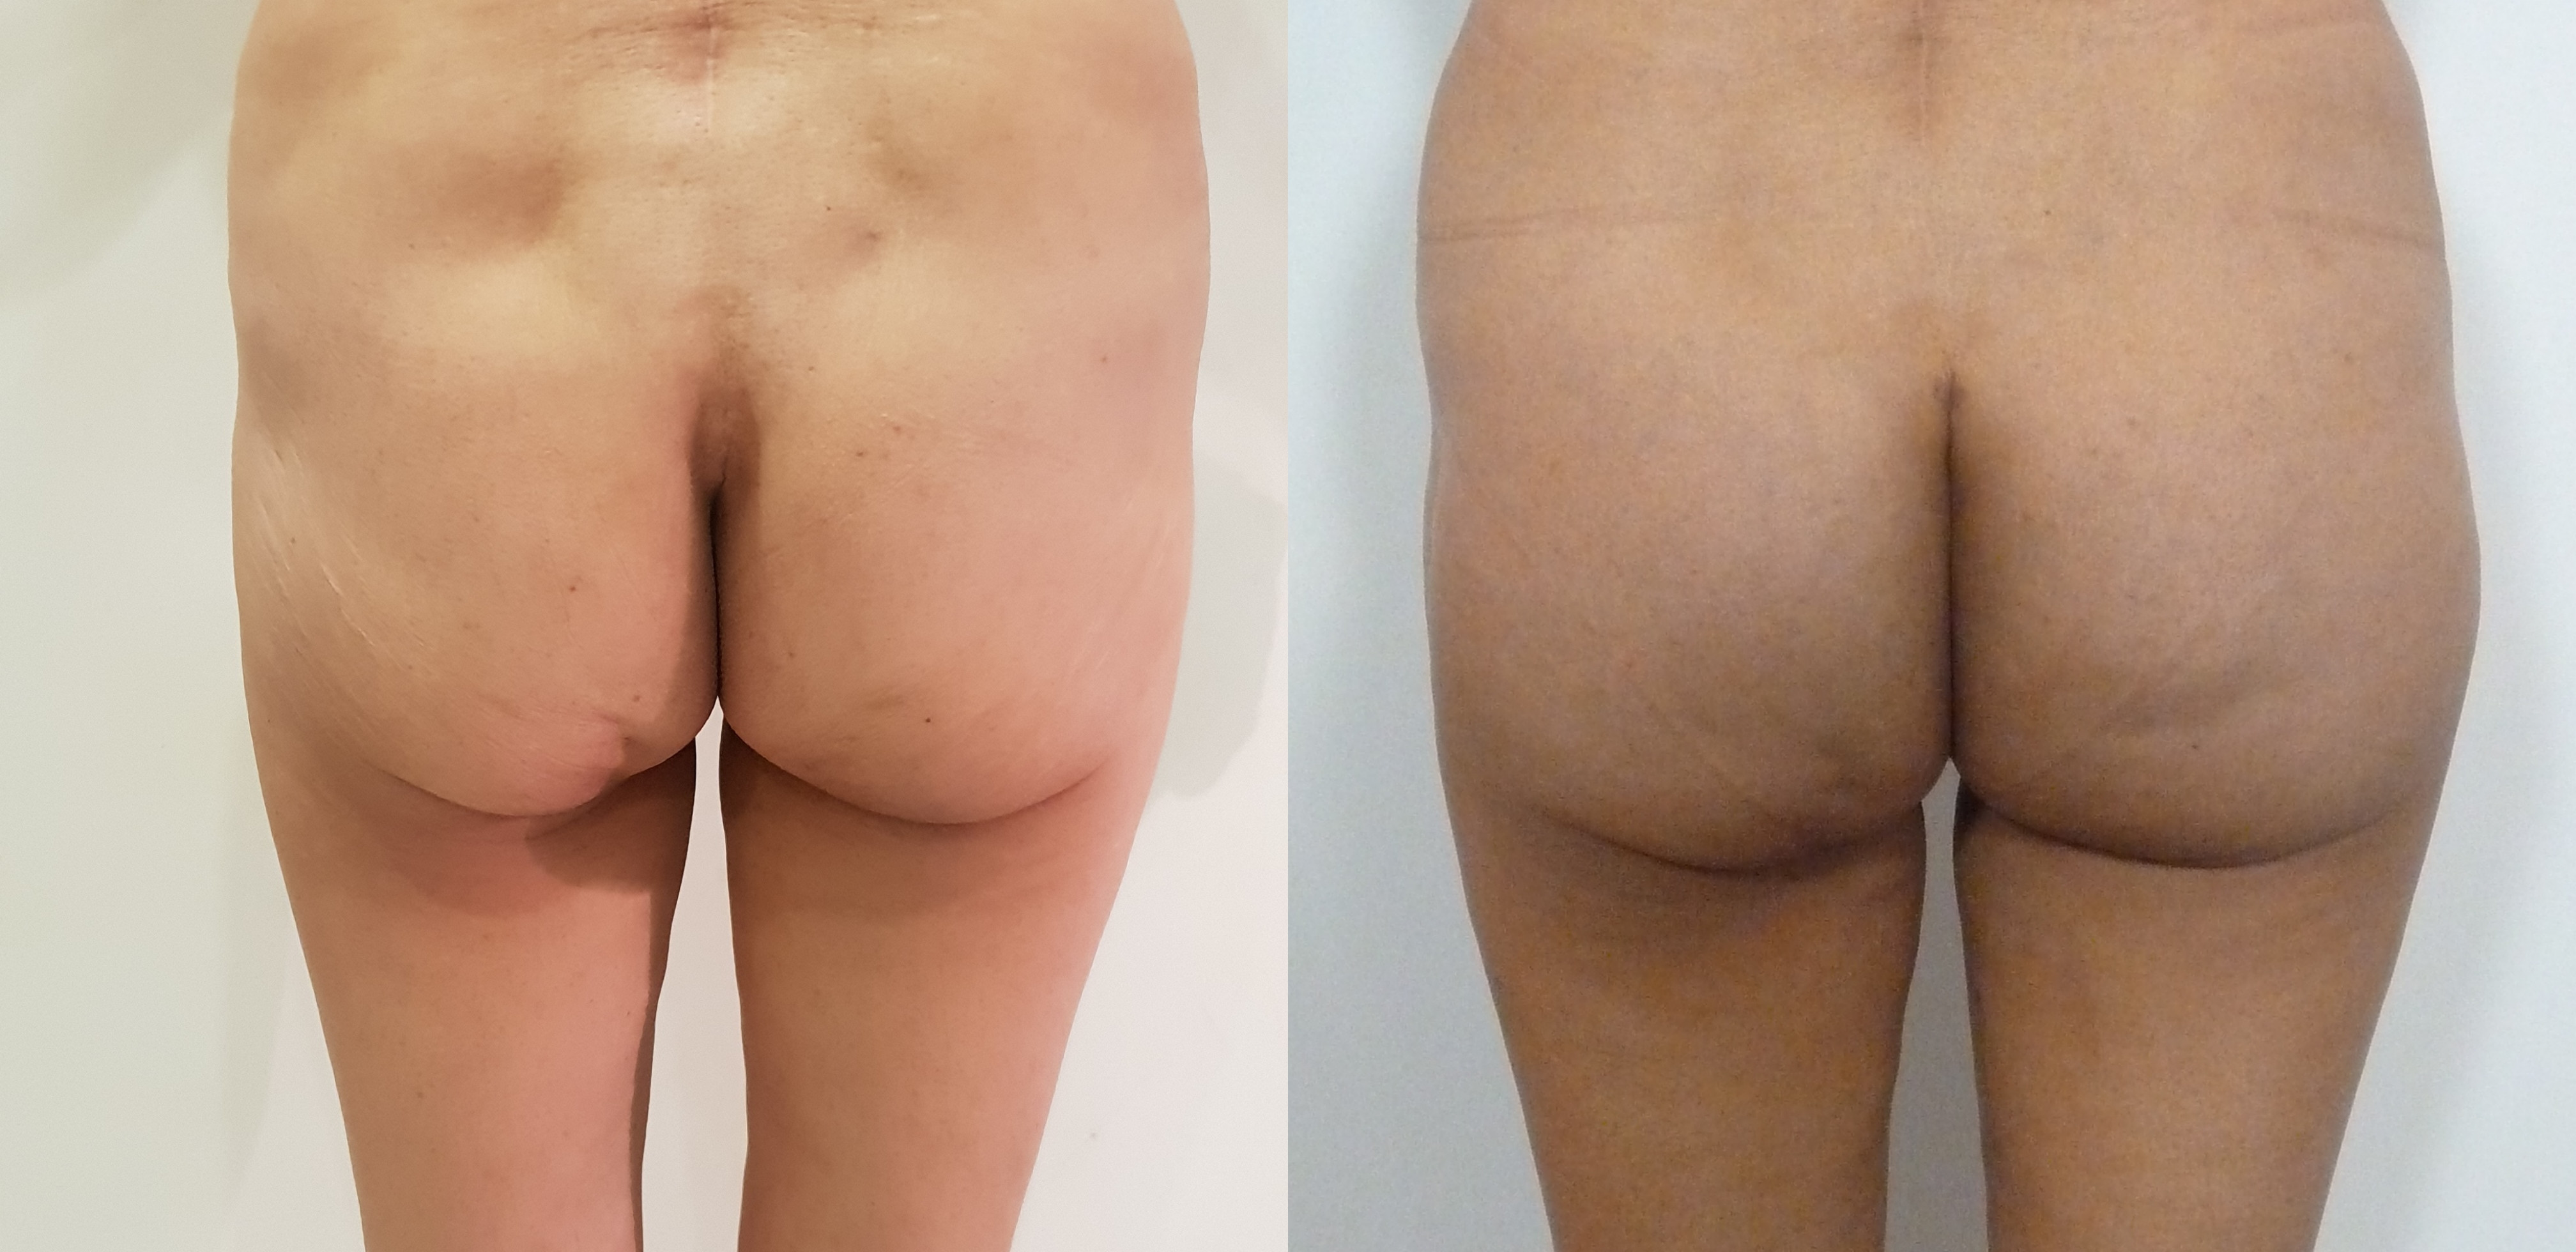 Buttock lifting